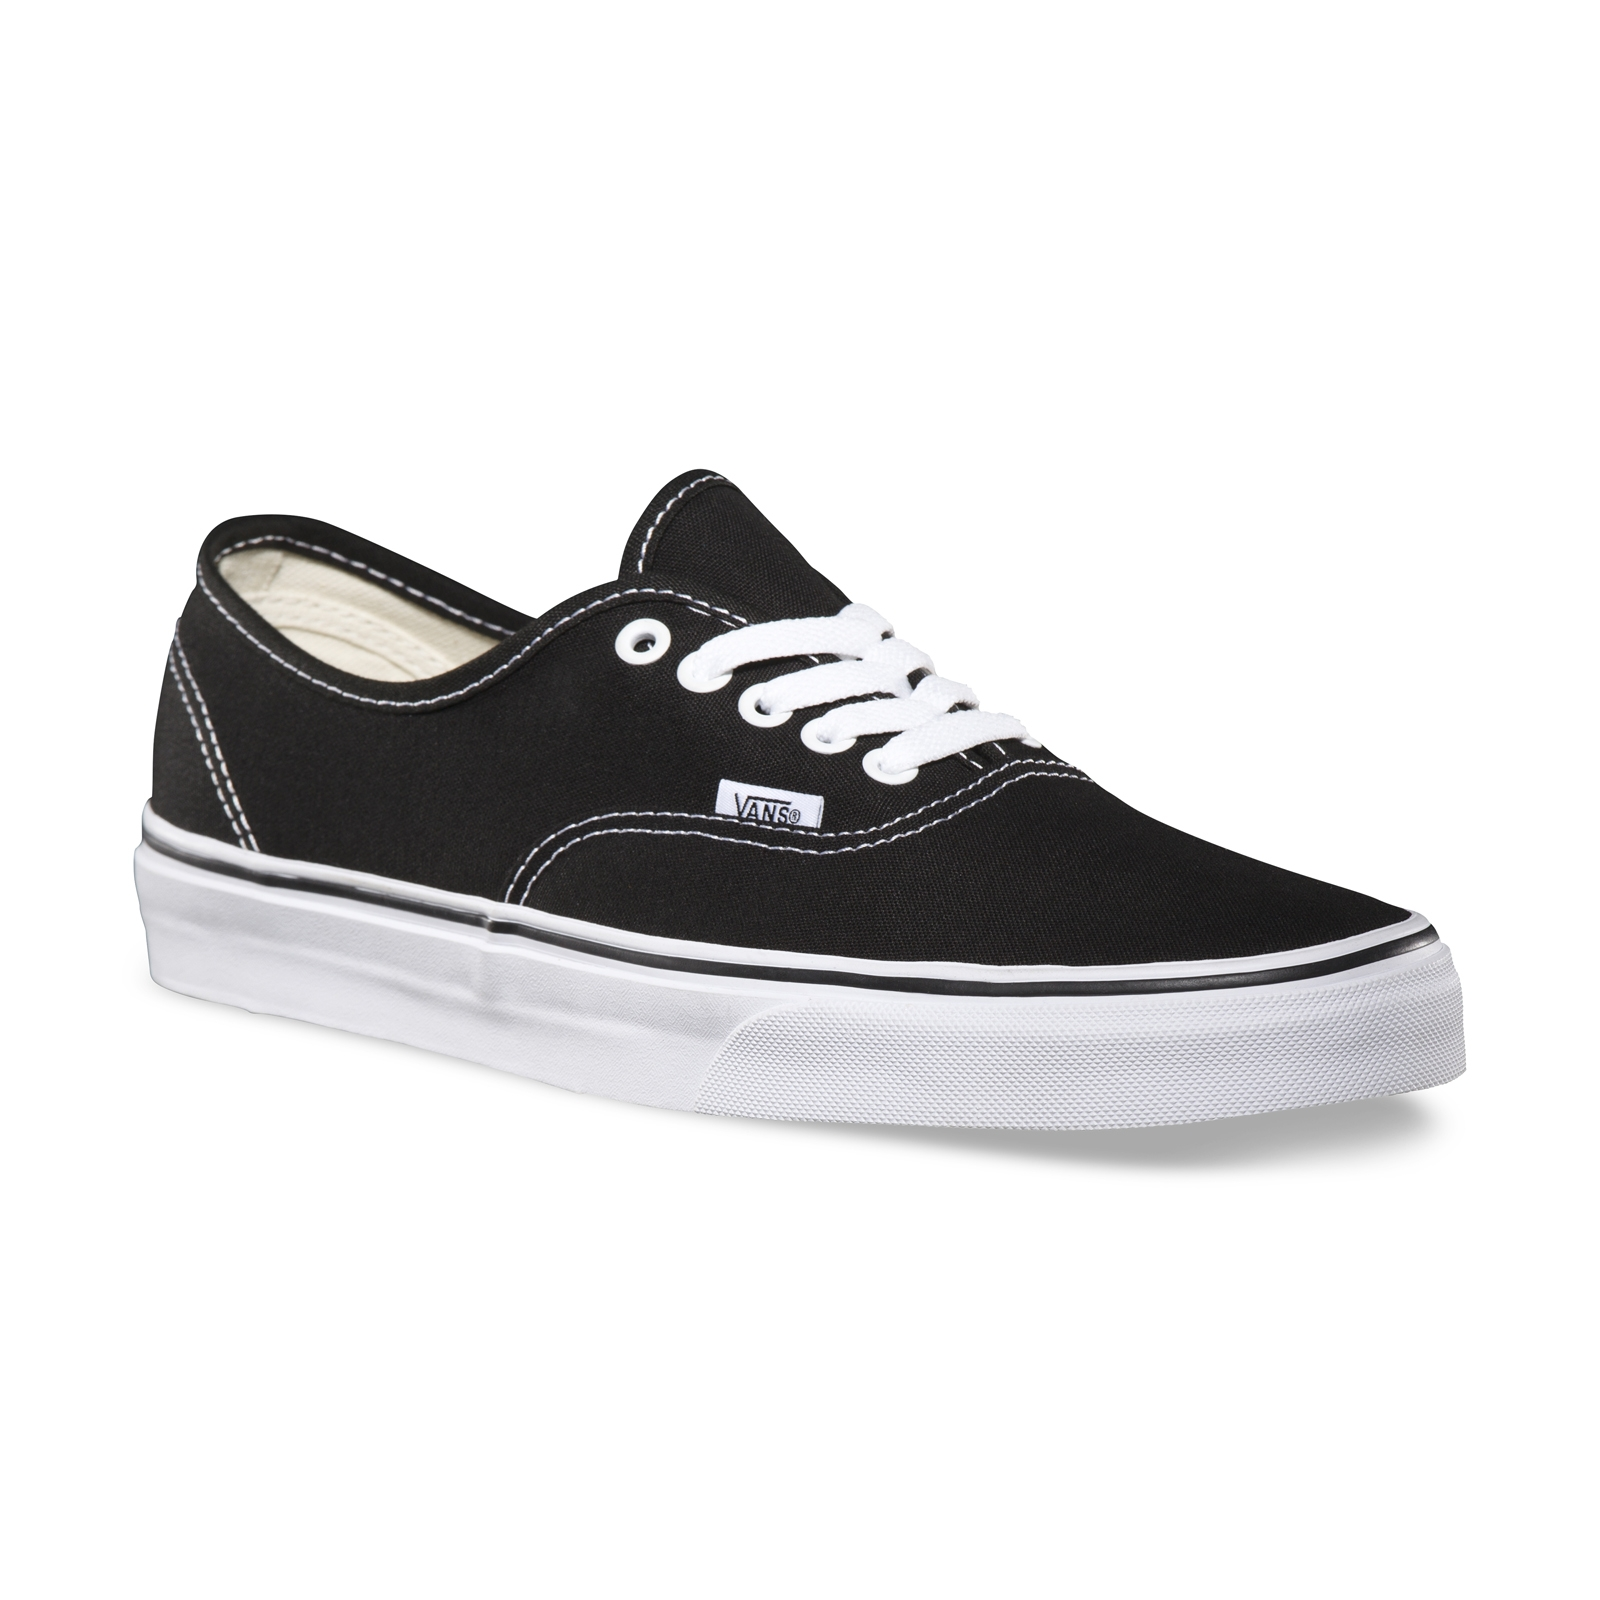 Tenisky Vans Authentic black